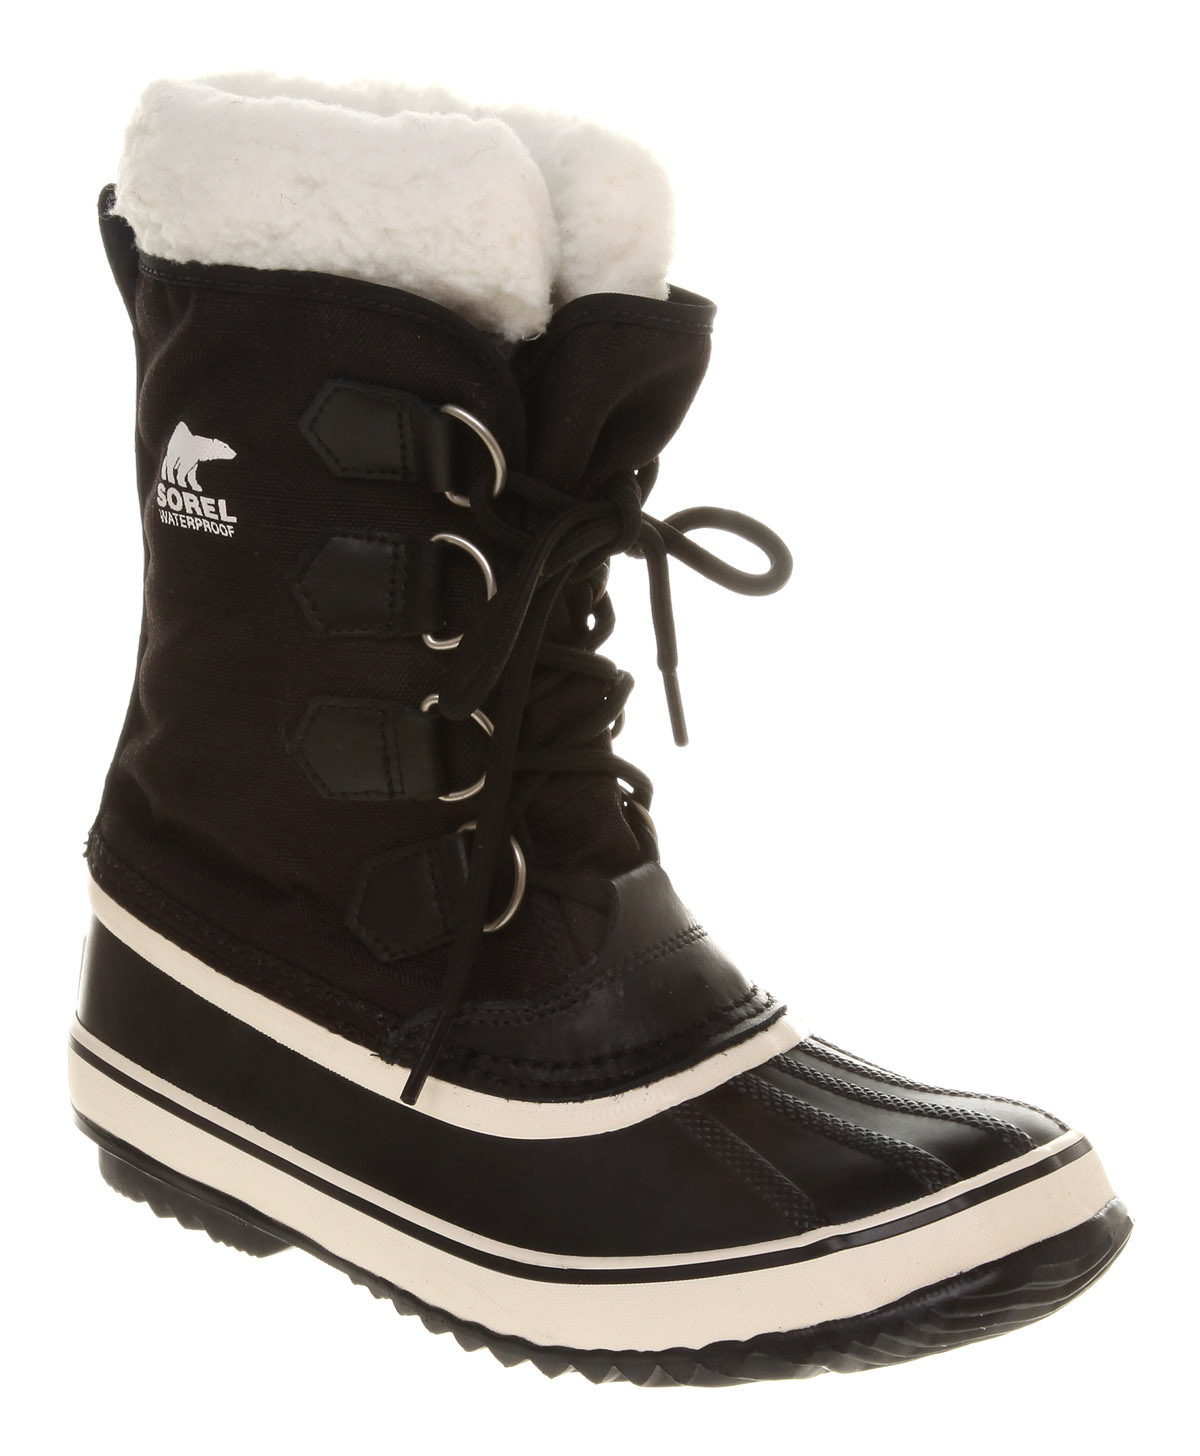 Shoe Carnival Womens Snow Hiking Boot